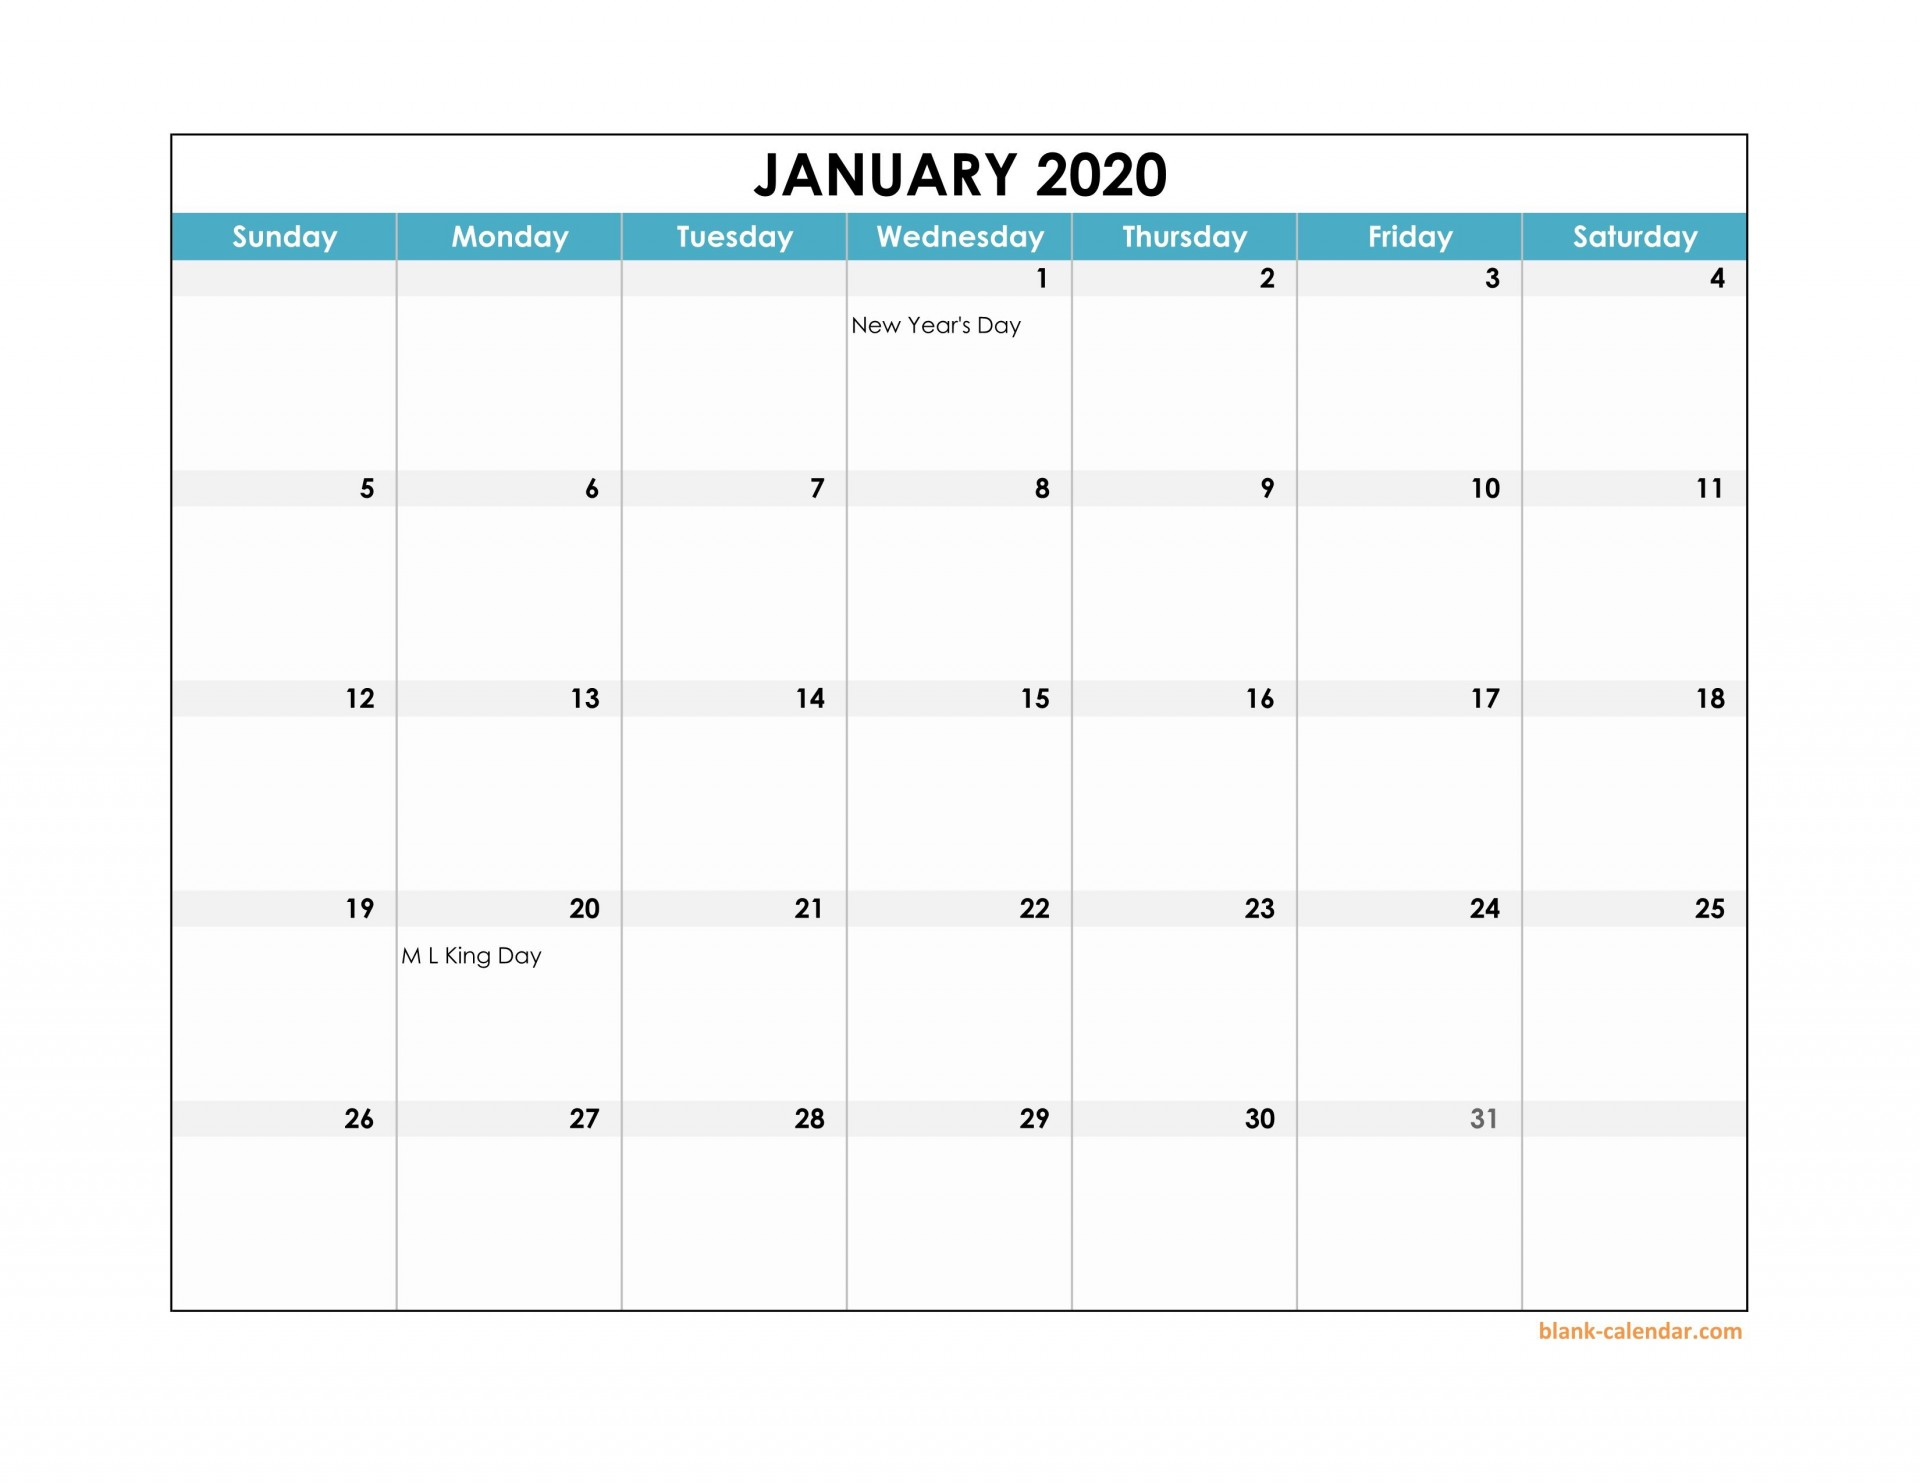 003 Fascinating Calendar 2020 Template Excel Photo  Monthly Free Uk In Format Download1920